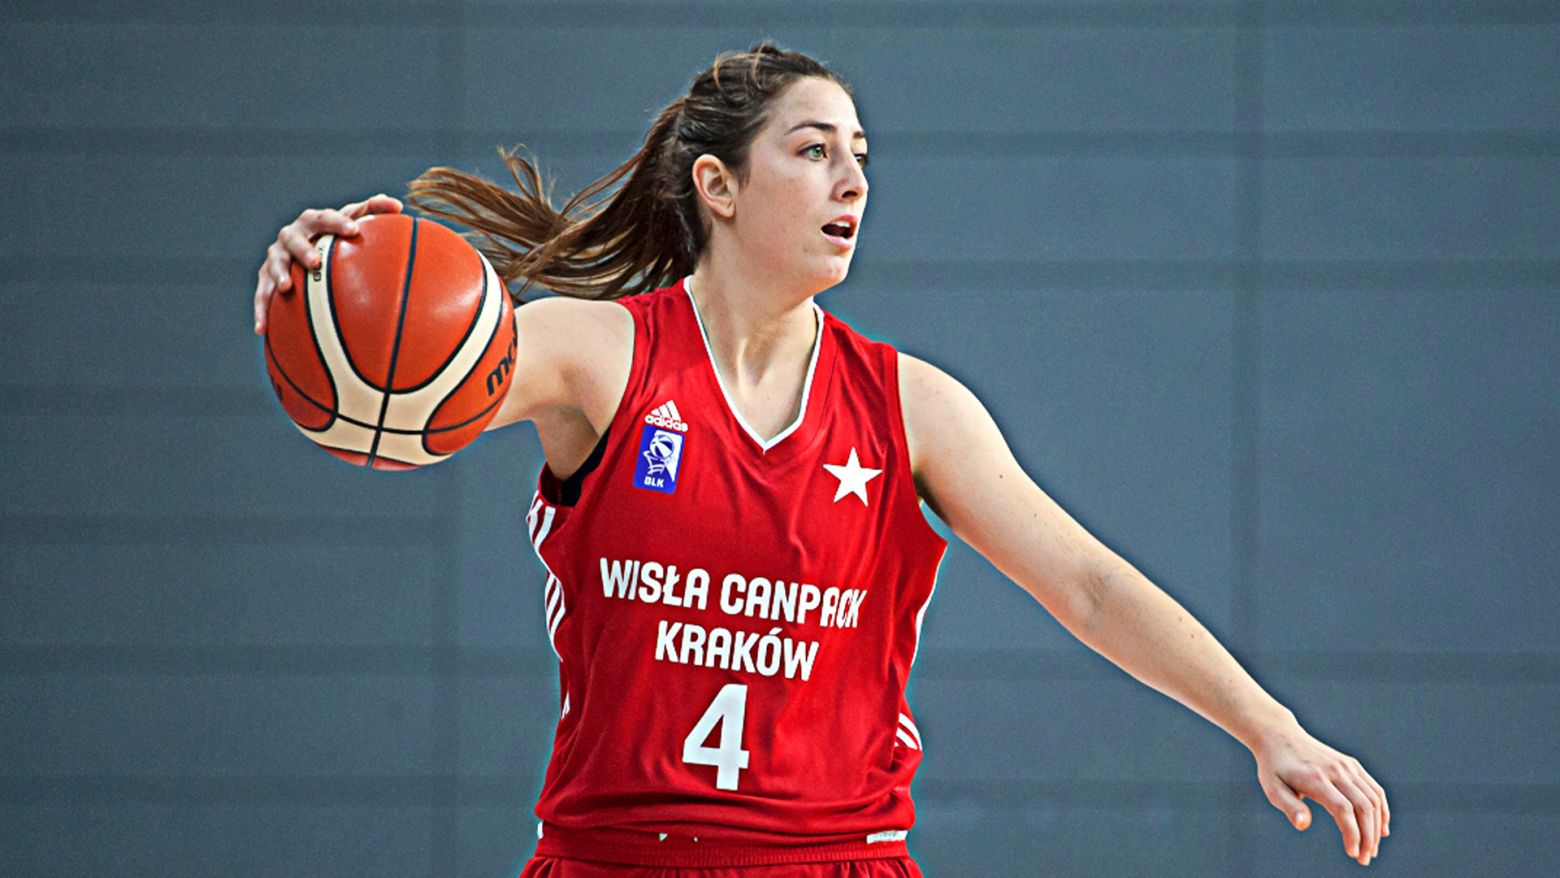 LEONOR RODRÍGUEZ had a big game in Euroleague with 21 points, +21 efficiency and the win at Famila Schio